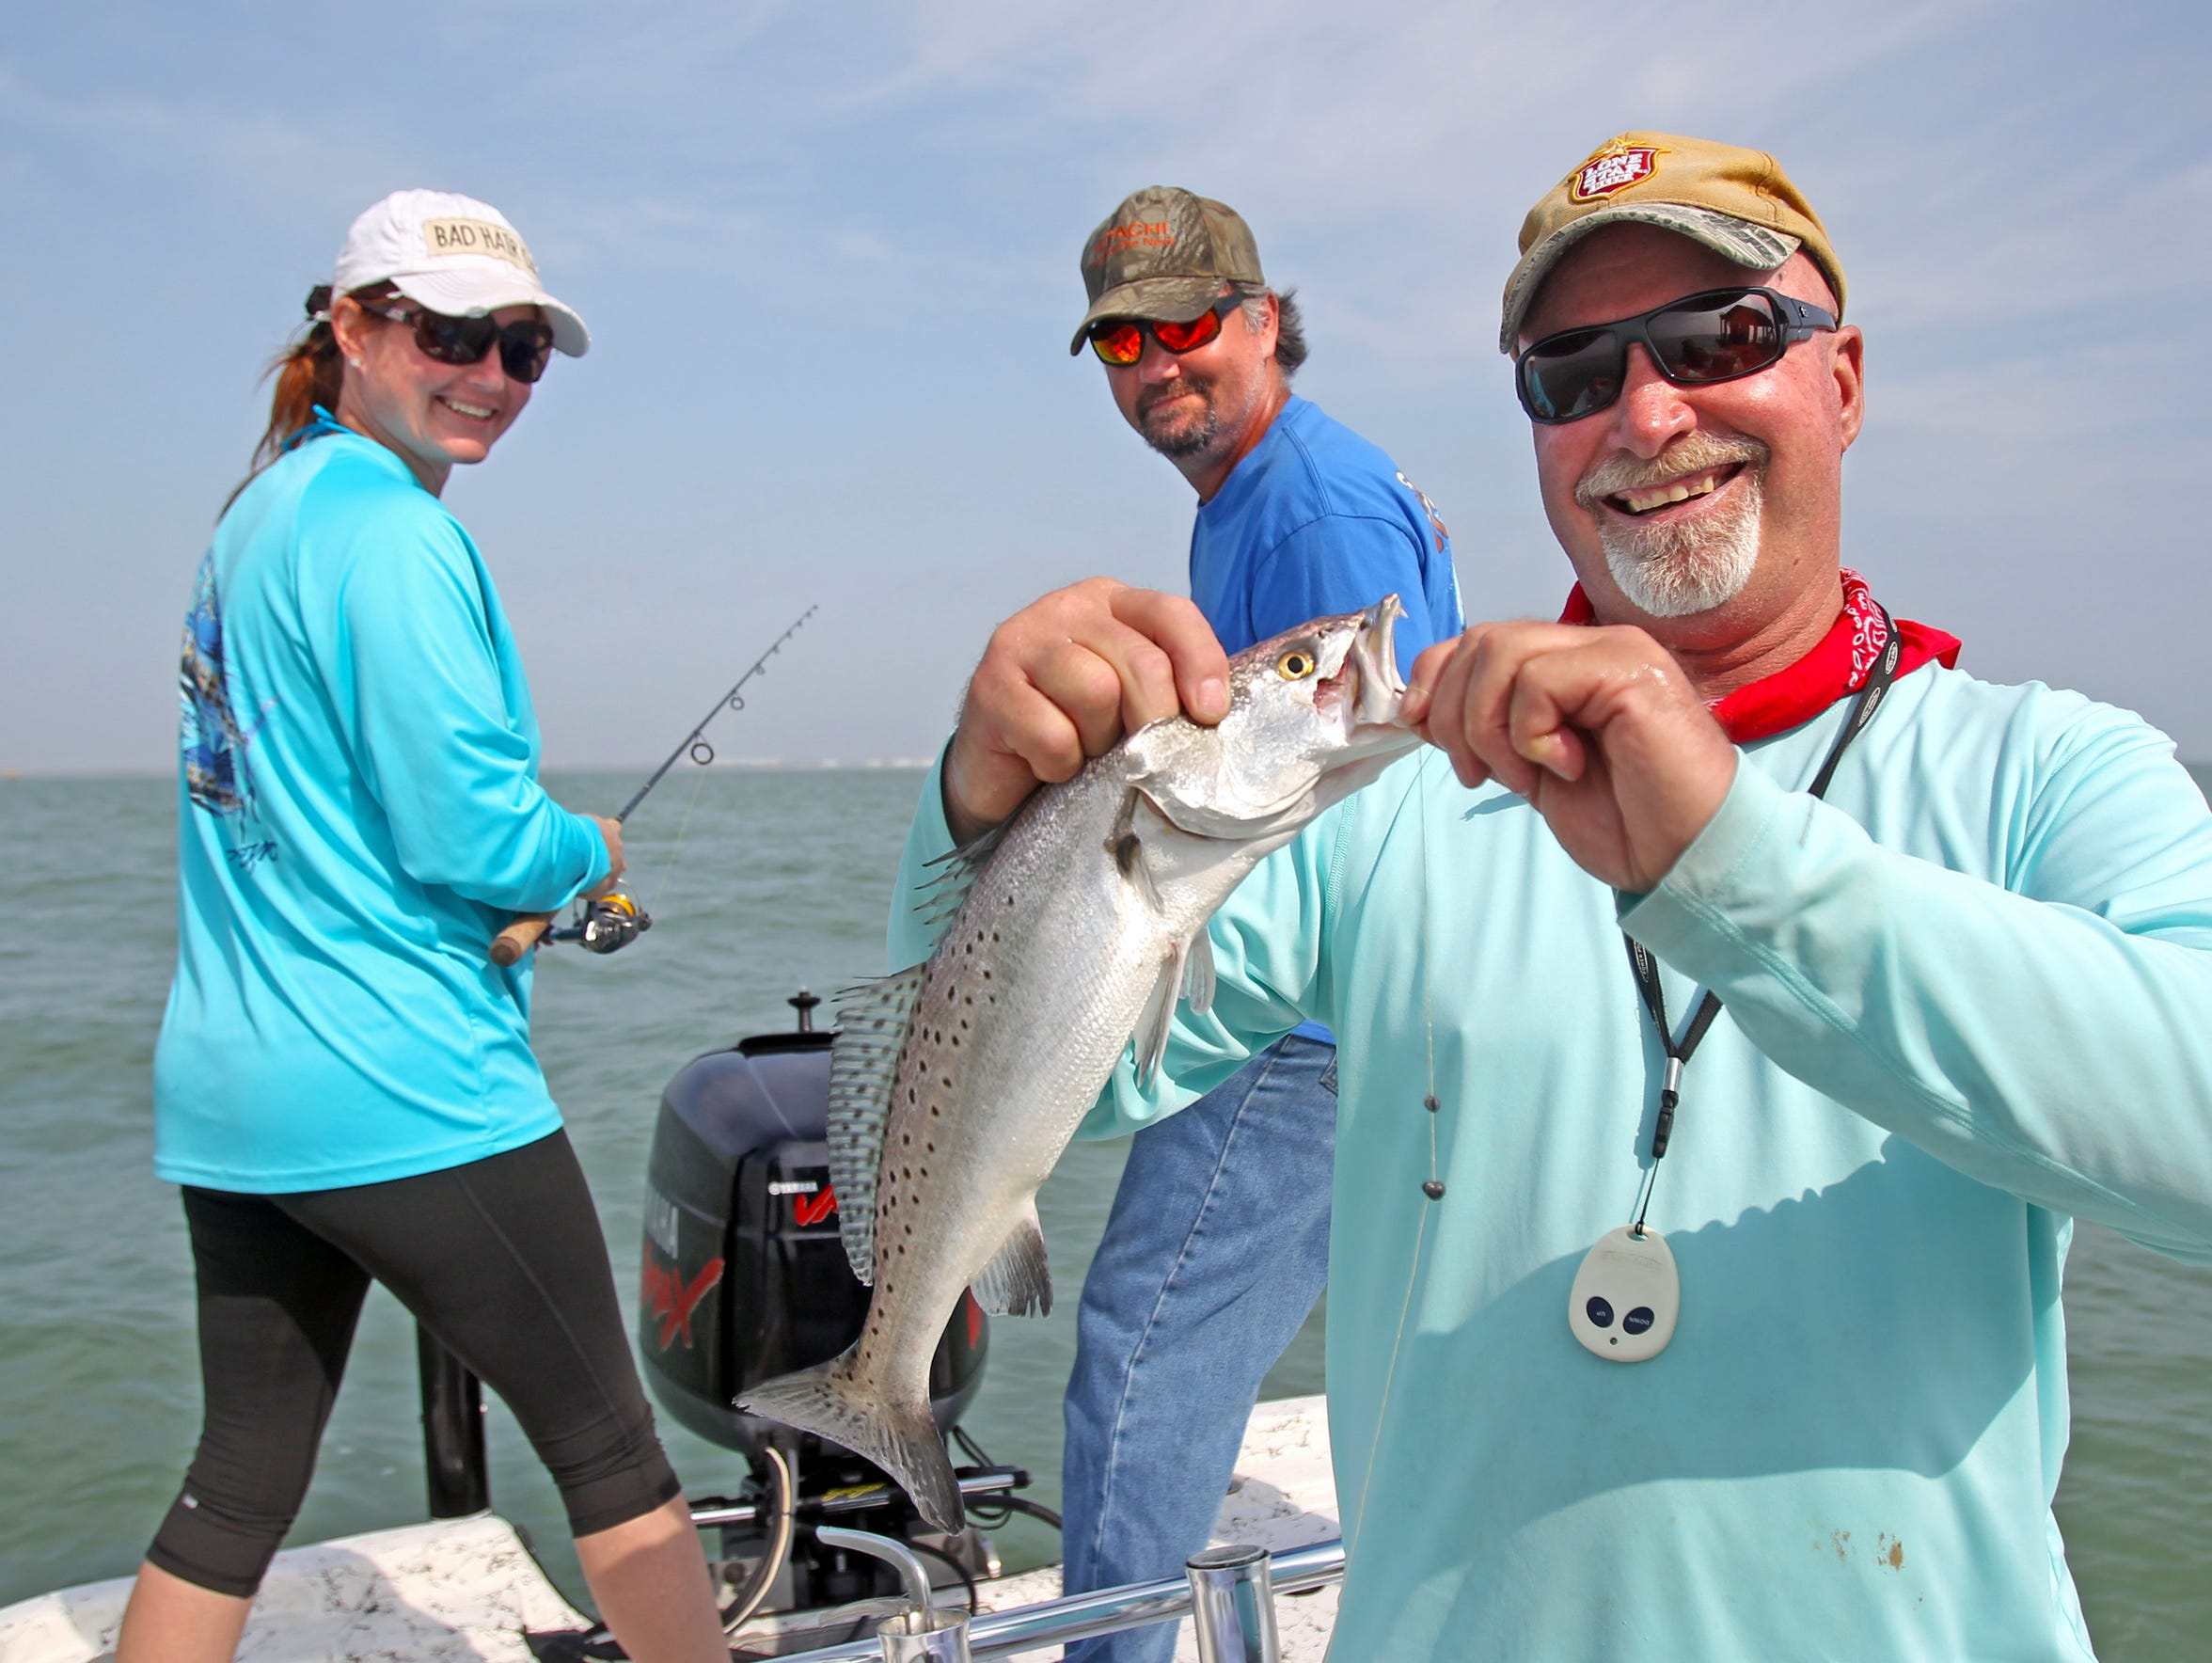 The personalities among fishing guides are as varied as the personalities in any profession. Choose one that suits your own tastes.